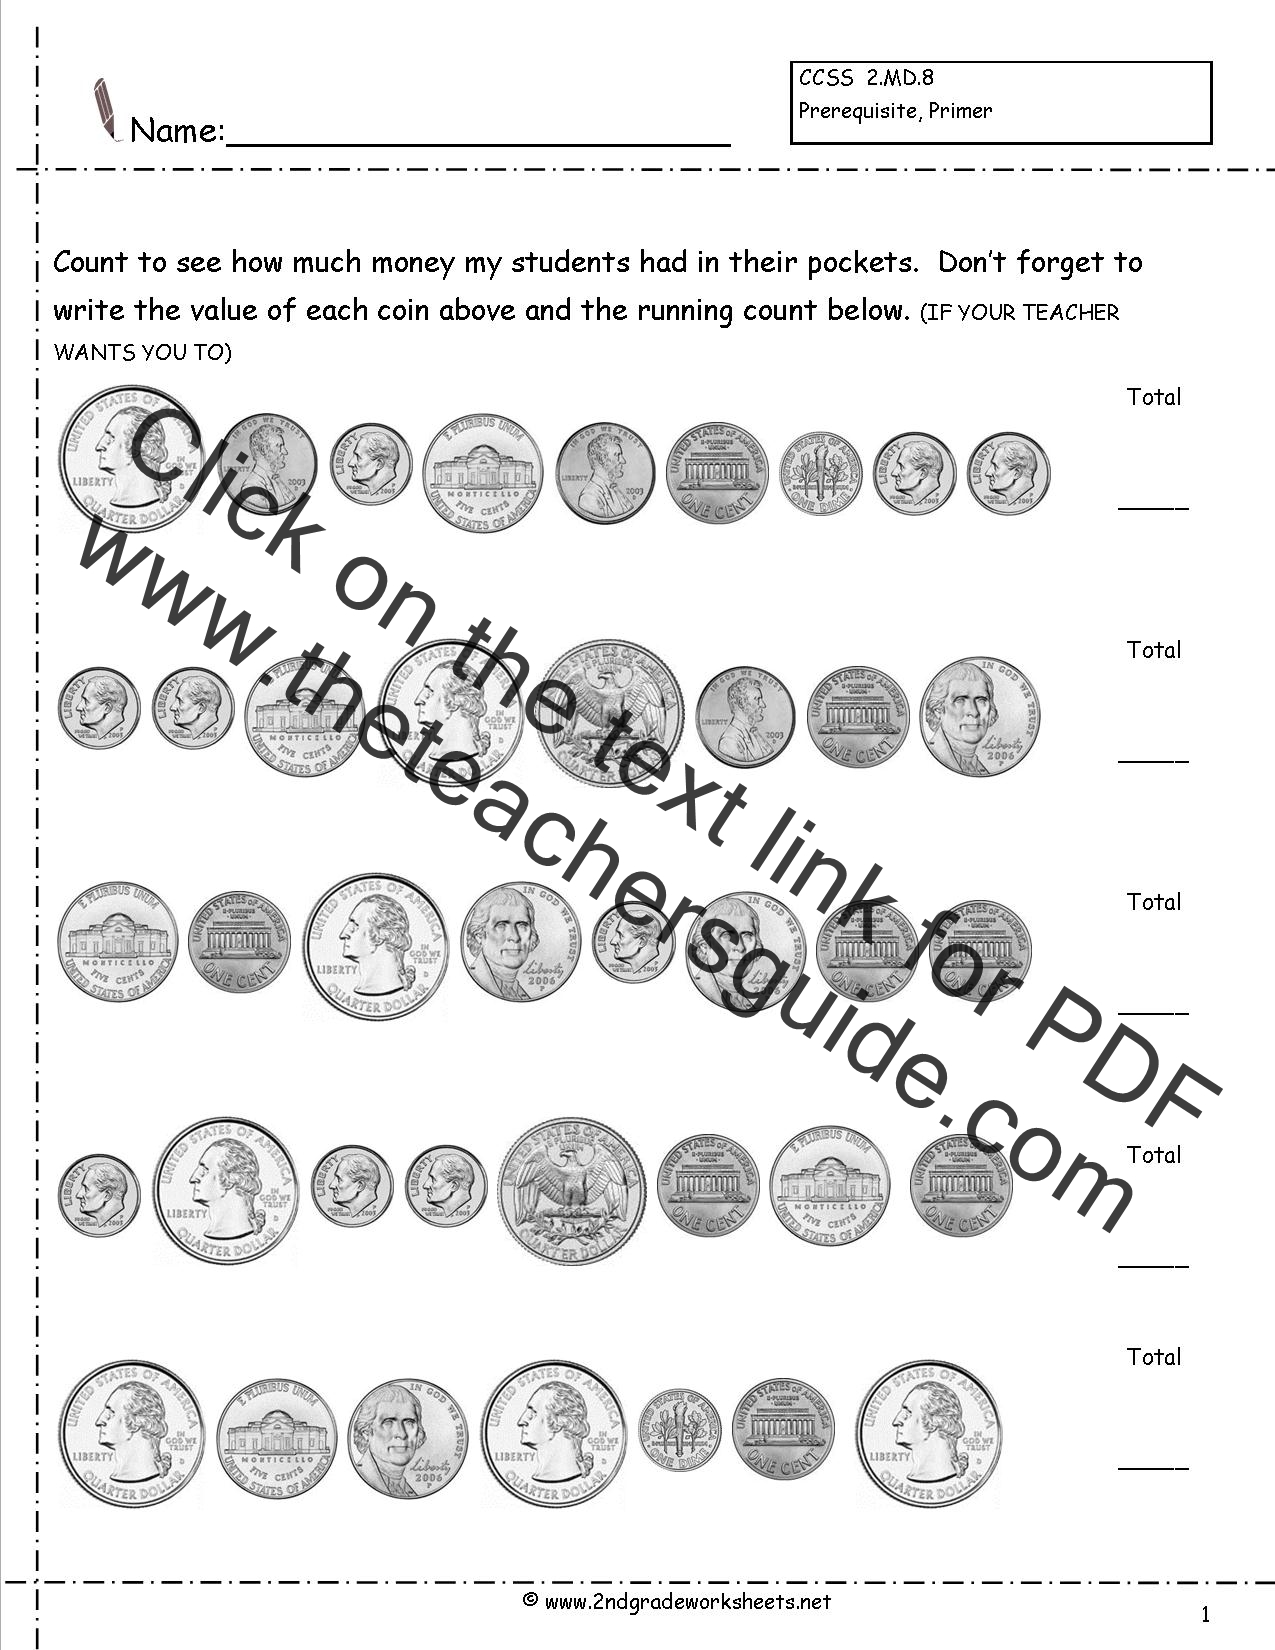 Worksheets Counting Coins Printable Worksheets ccss 2 md 8 worksheets counting coins money worksheets